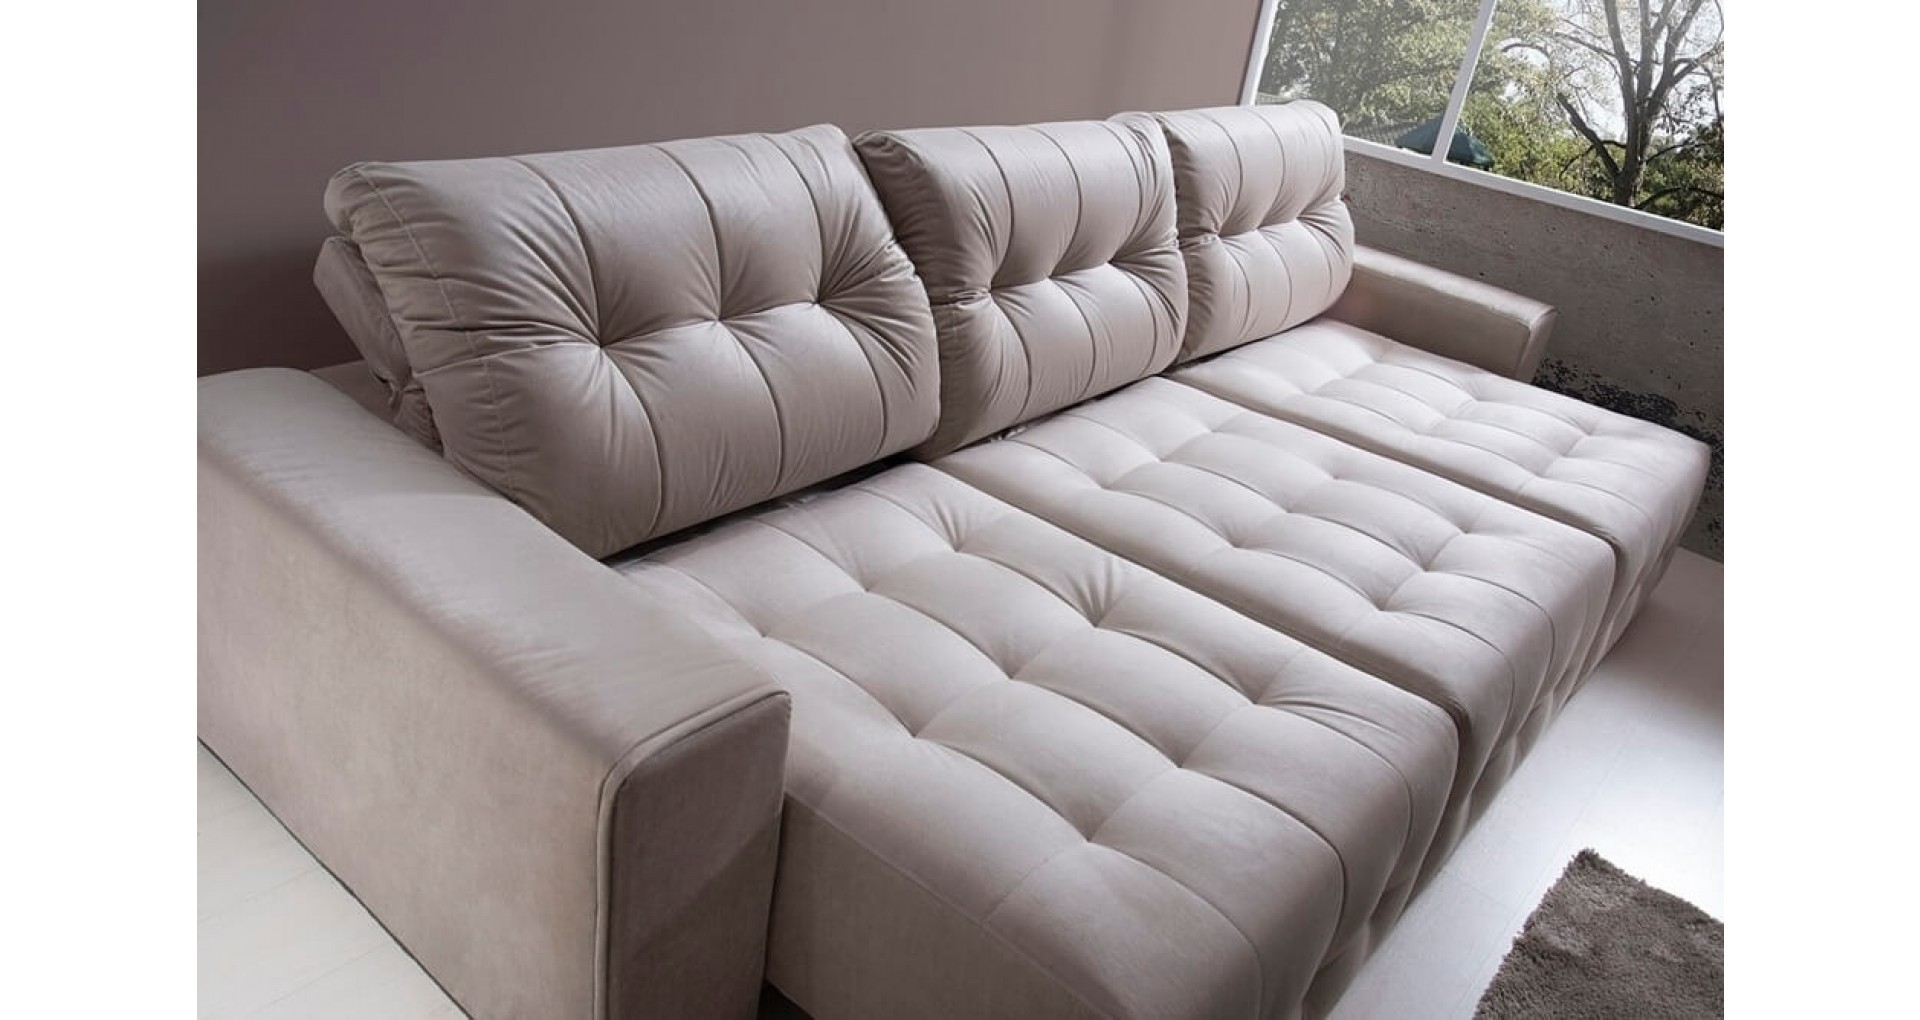 sofa 4 lugares retratil reclinavel bege metris